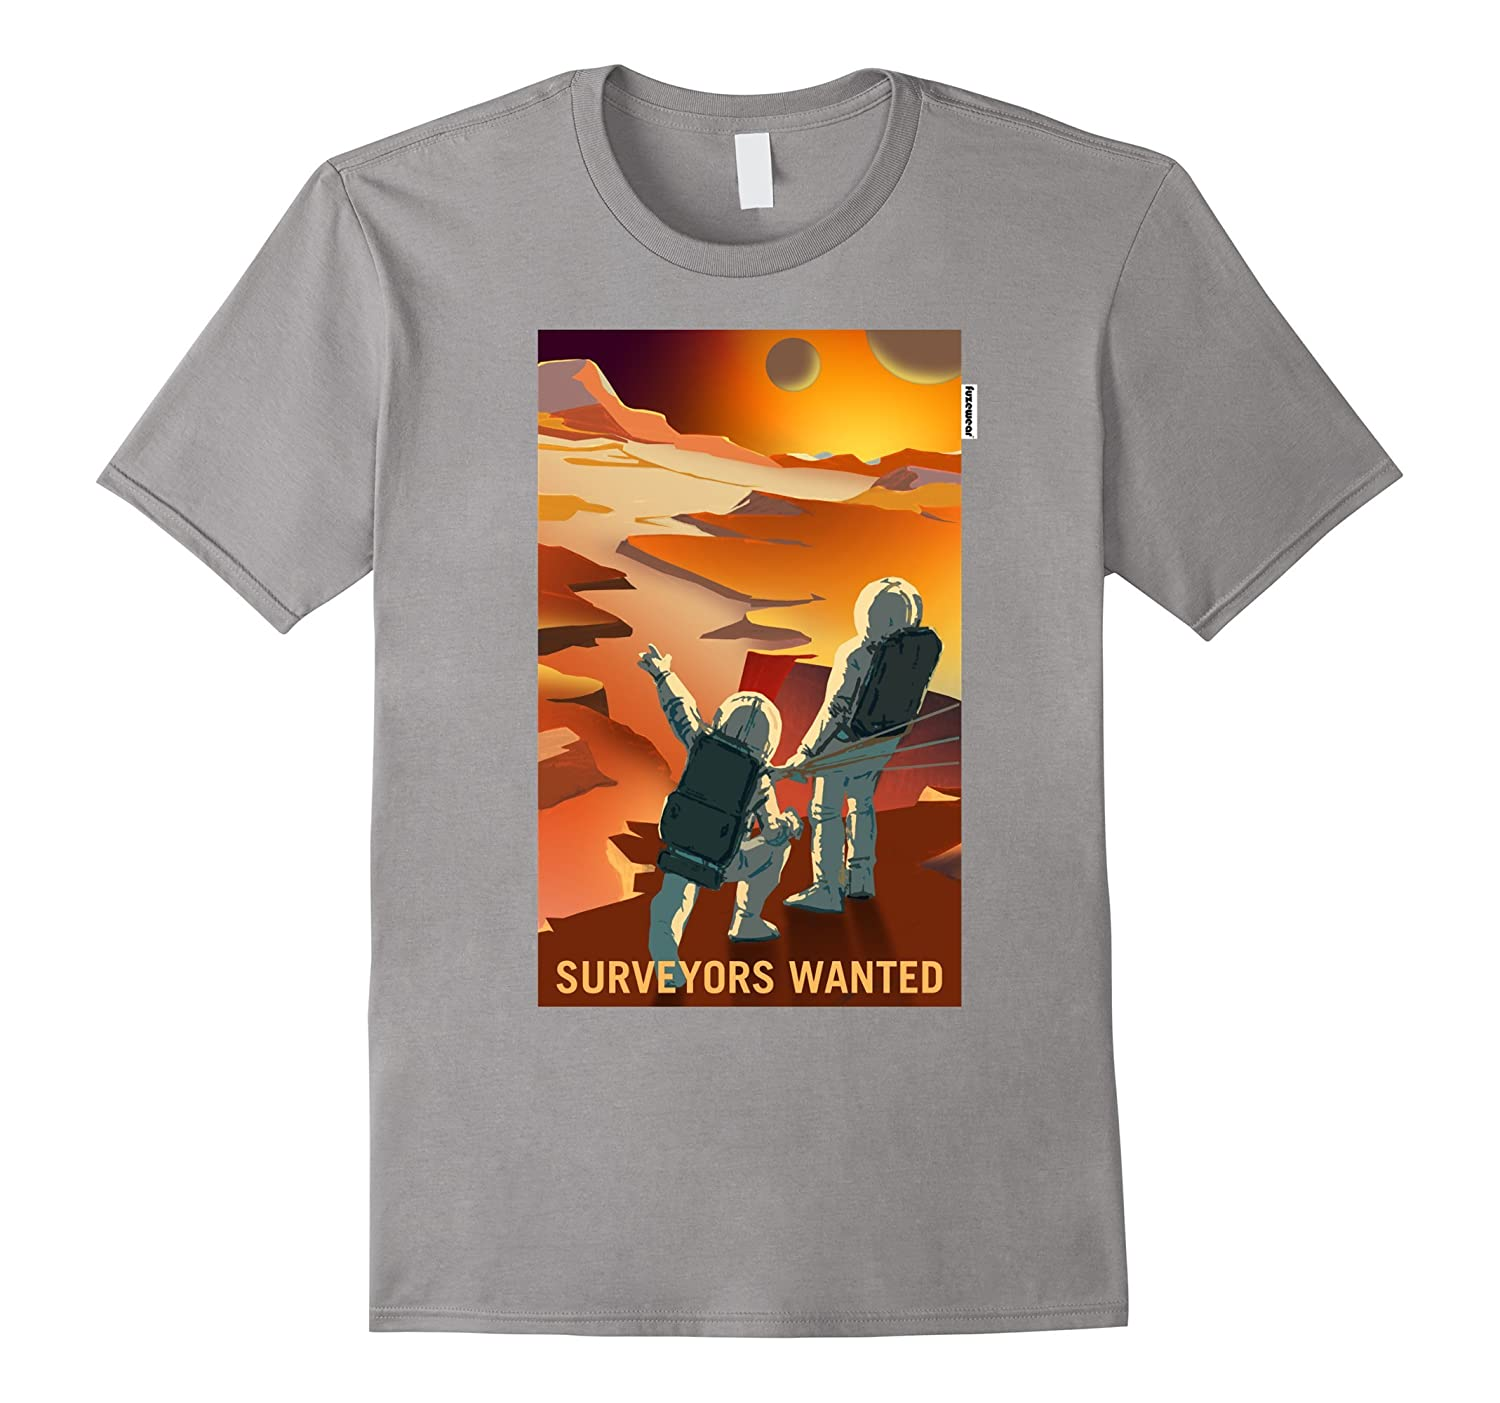 Surveyors Wanted on Mars T-shirt Vintage Poster Occupy Mars-TD